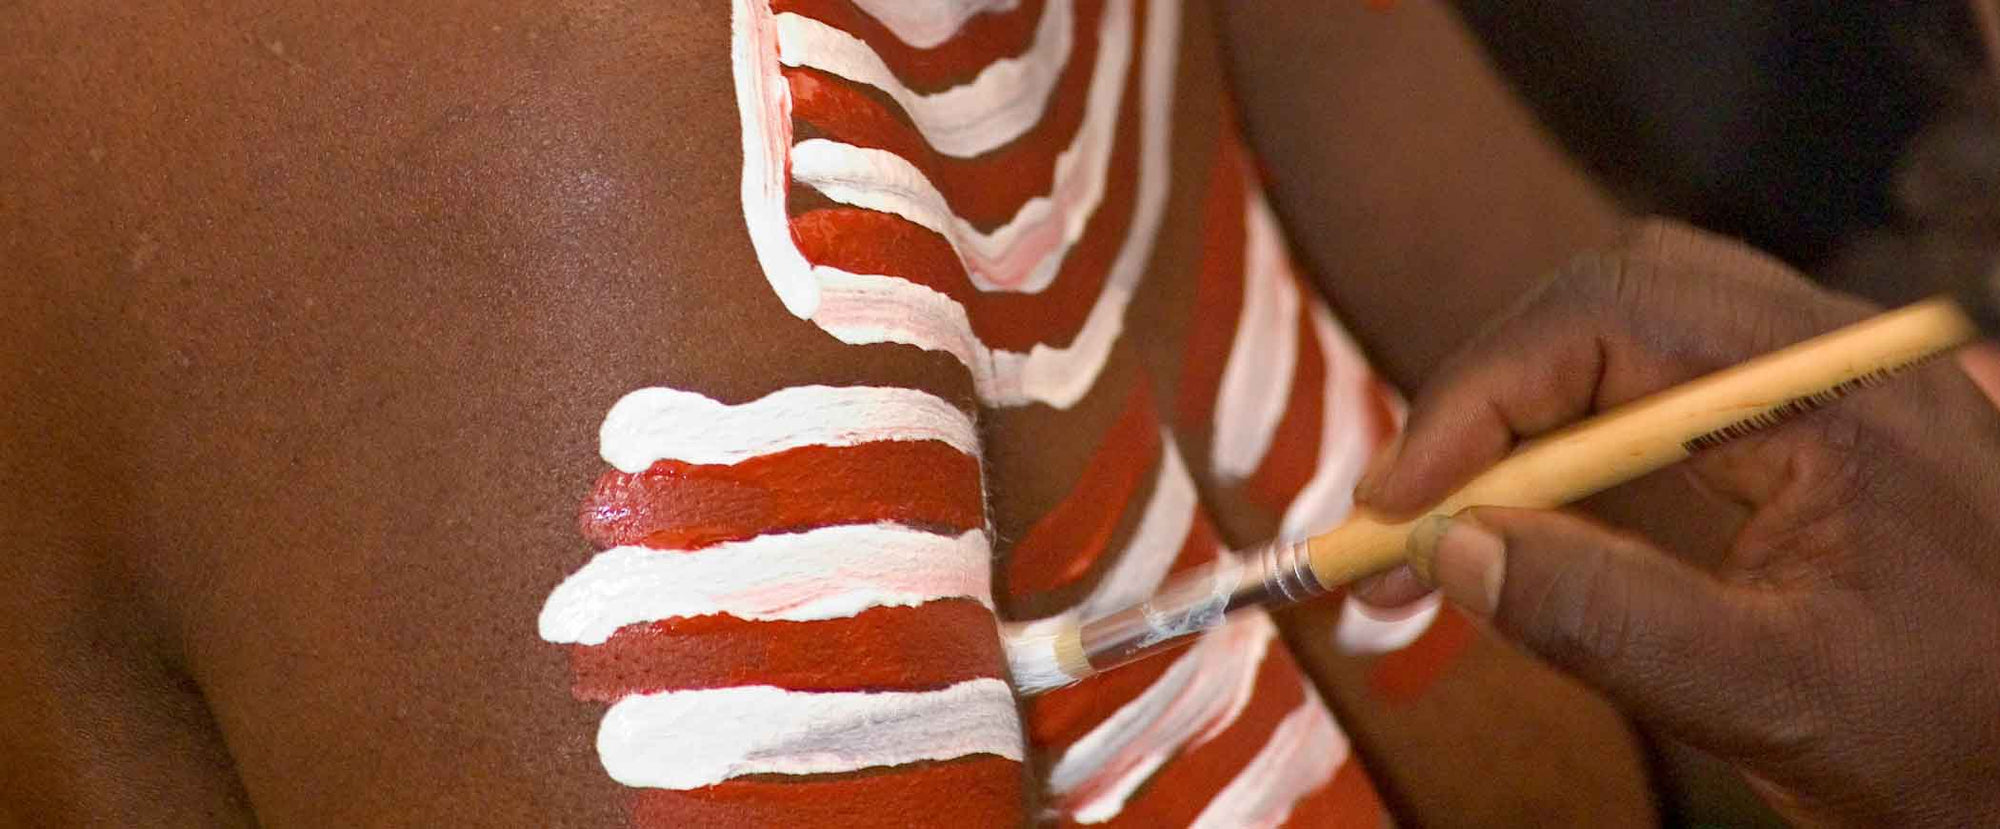 Women's Ceremony and Body Paint Designs